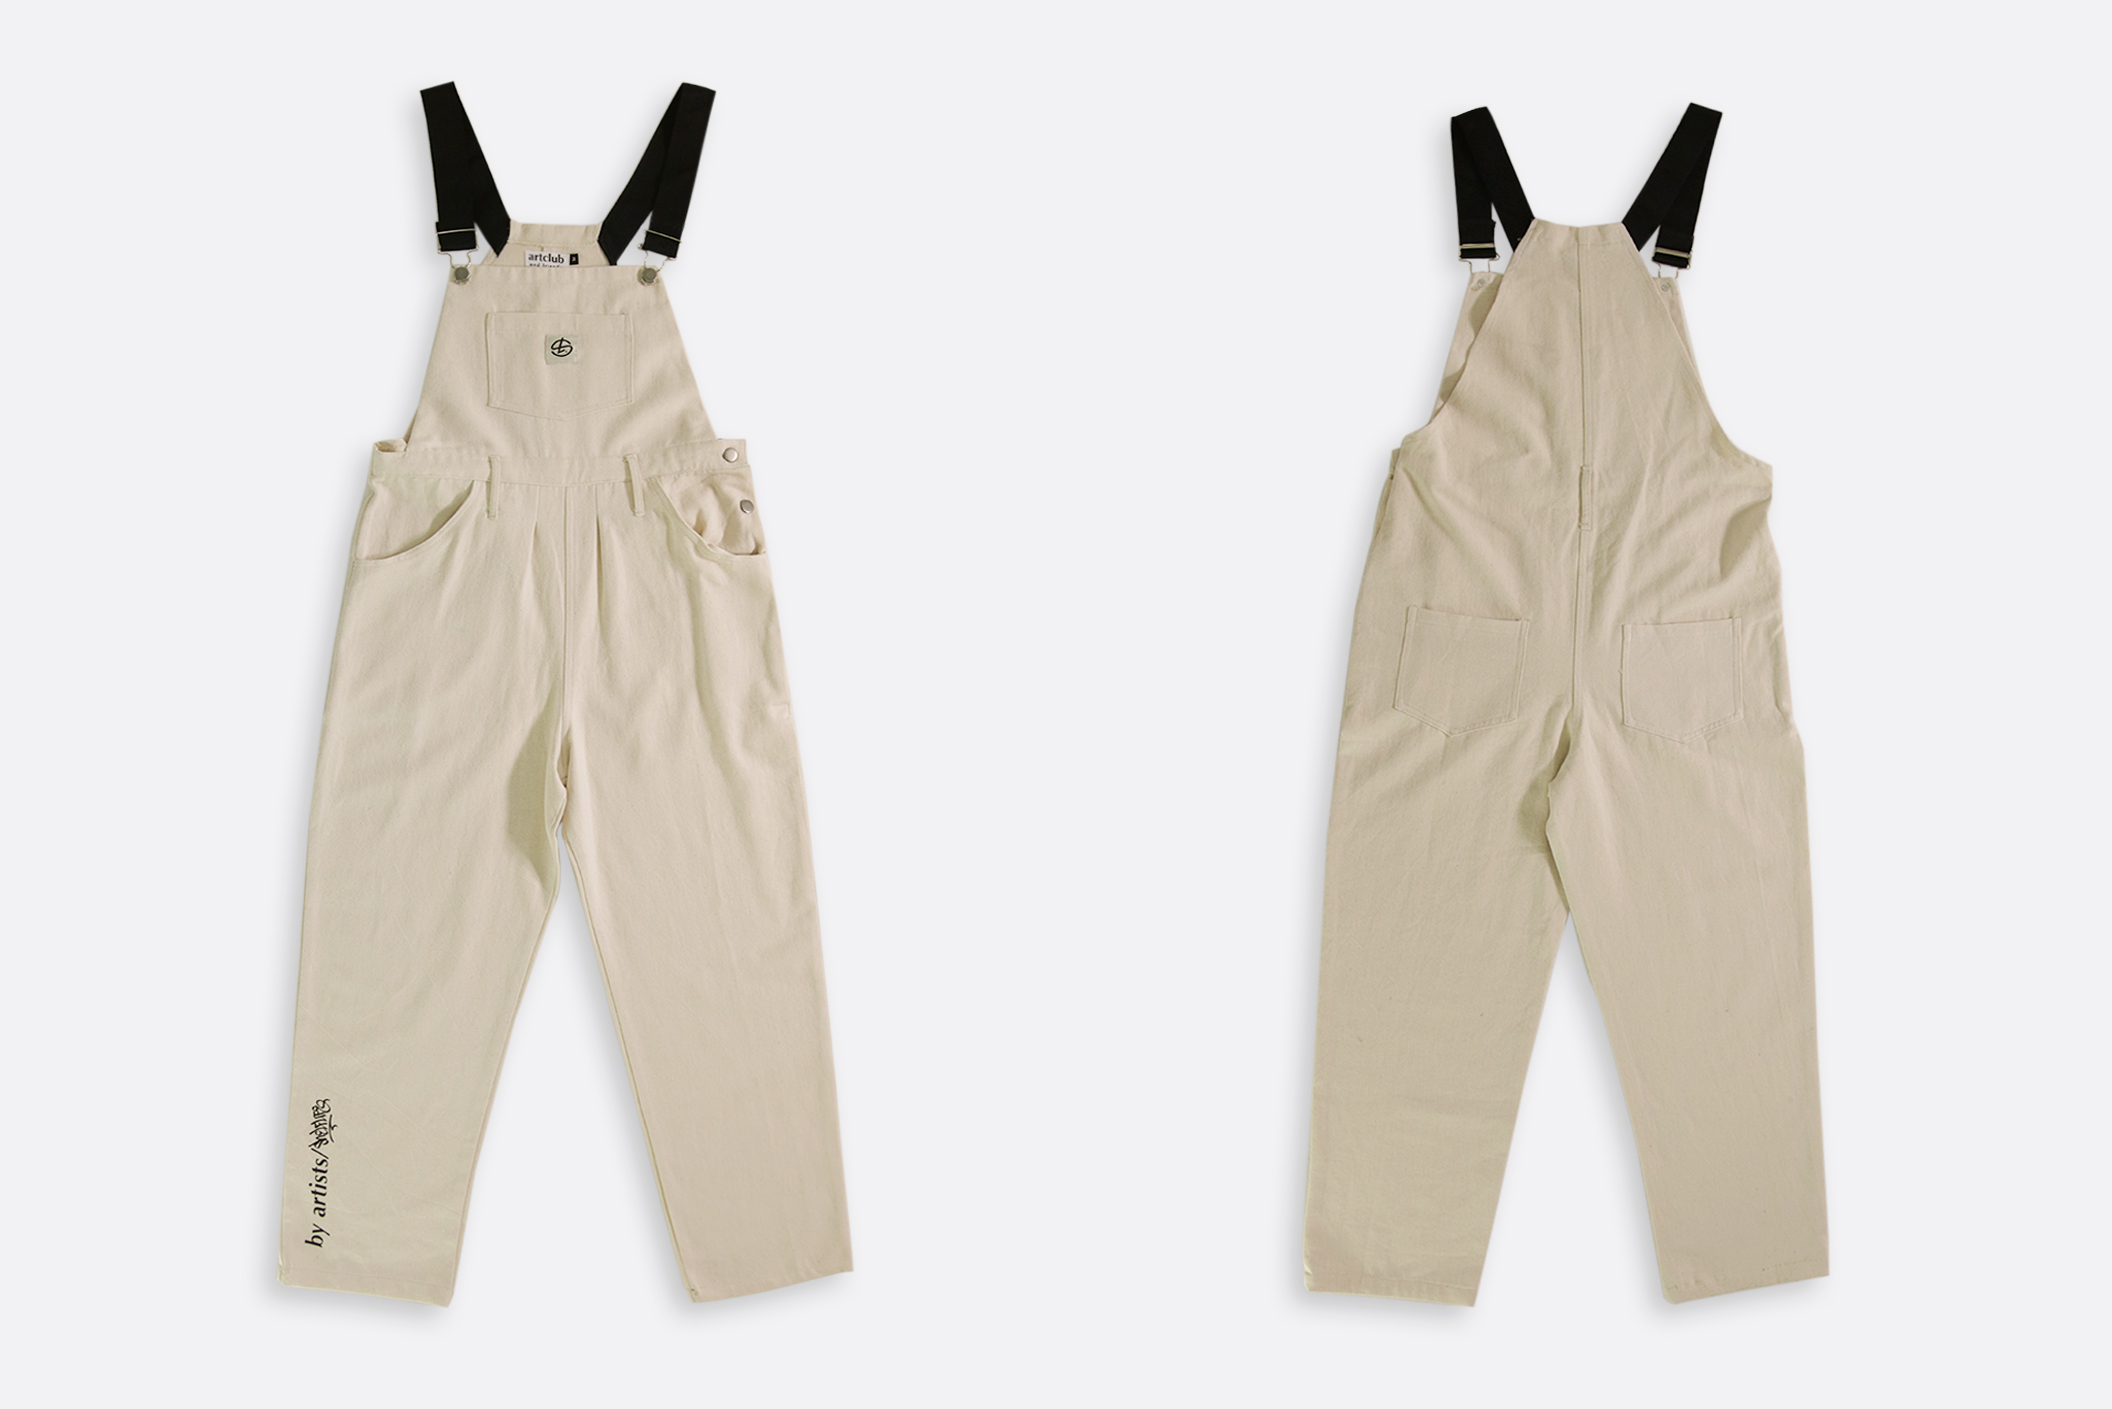 Shelflife x Artclub and Friends Dungarees